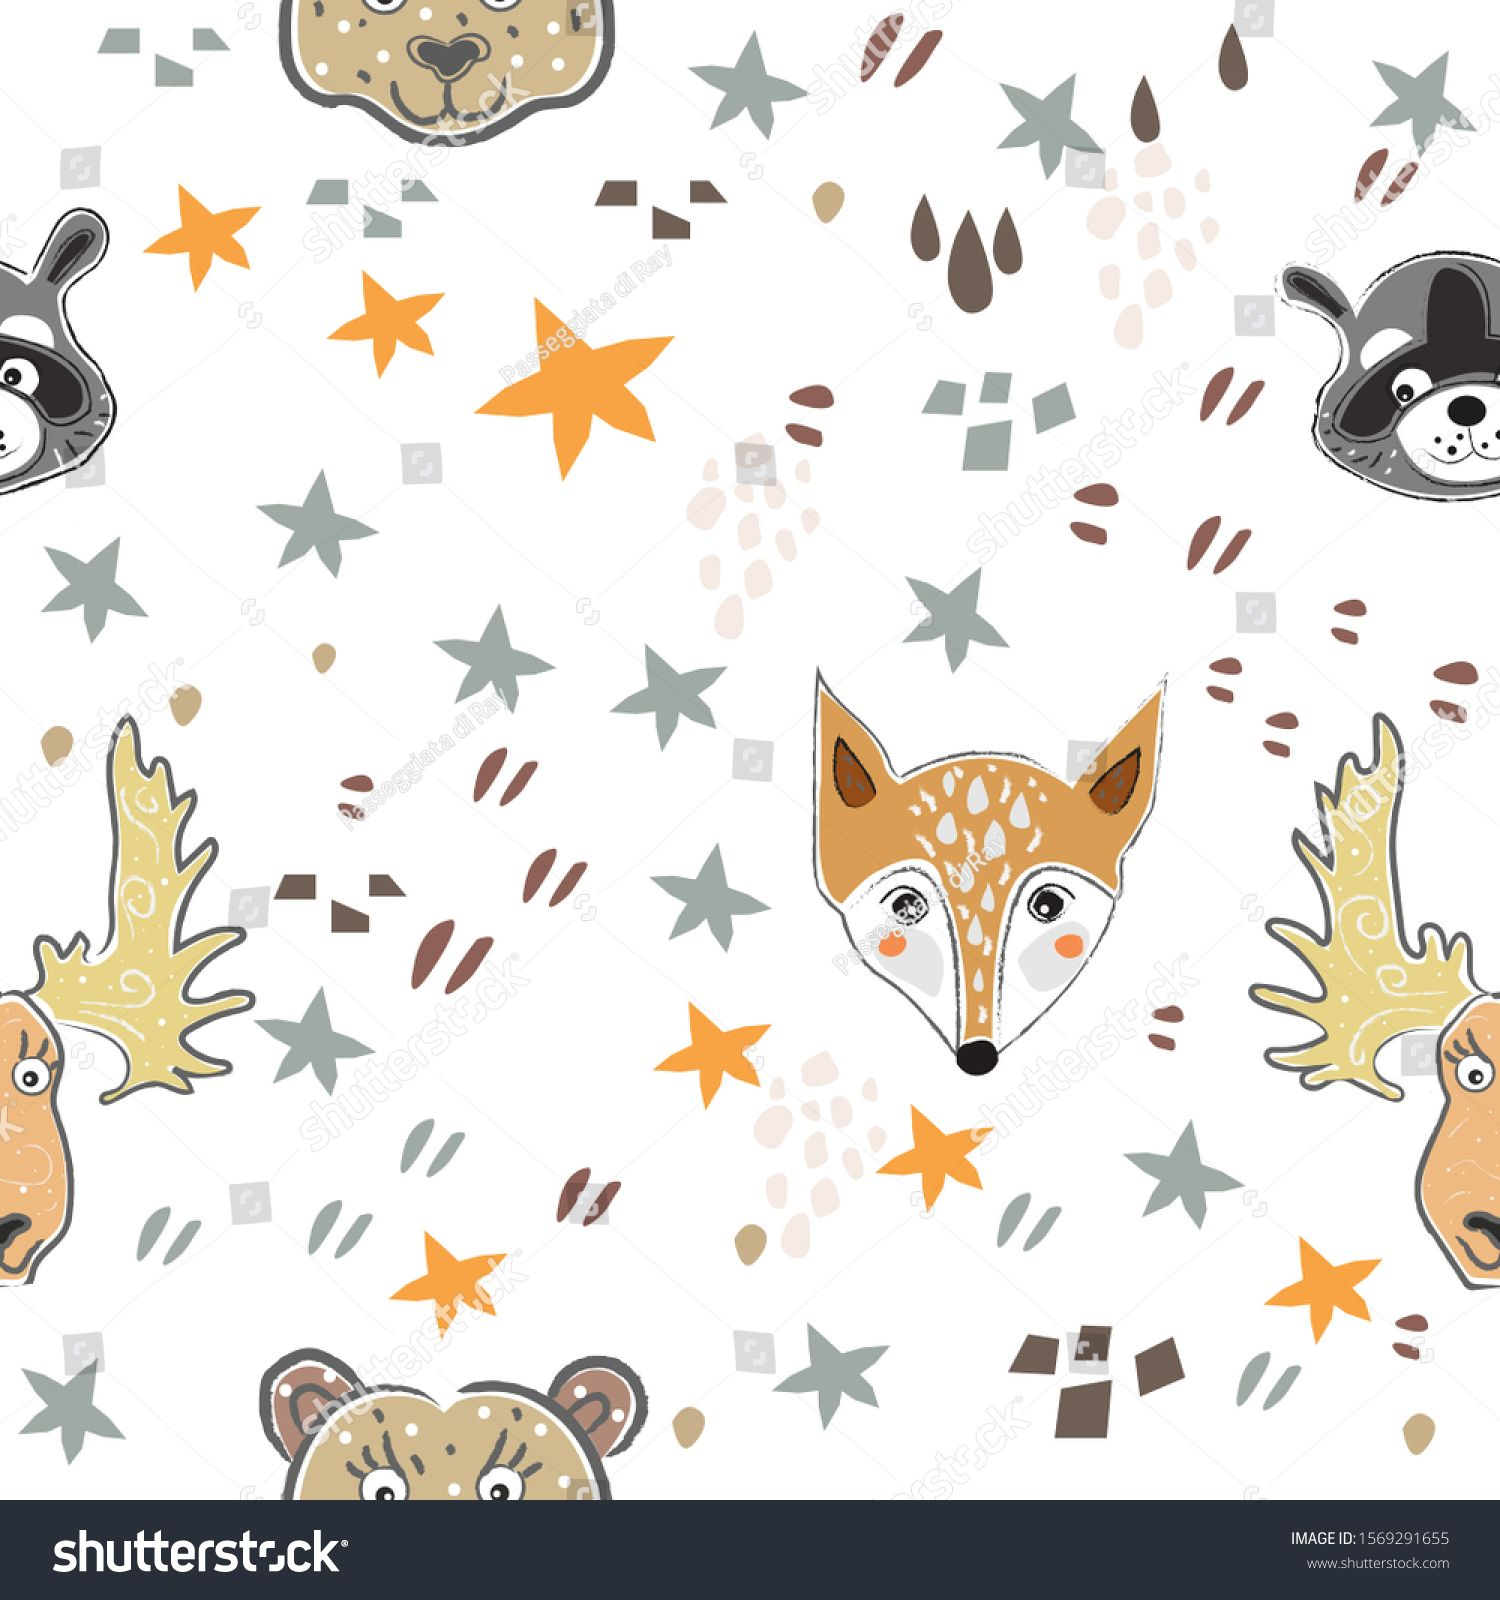 Seamless Fox Pattern With Cute Heads Of Animals Stars And Abstract Shapes Cute Scandinavian Style Ad Spon In 2020 Fox Pattern Stock Illustration Abstract Shapes